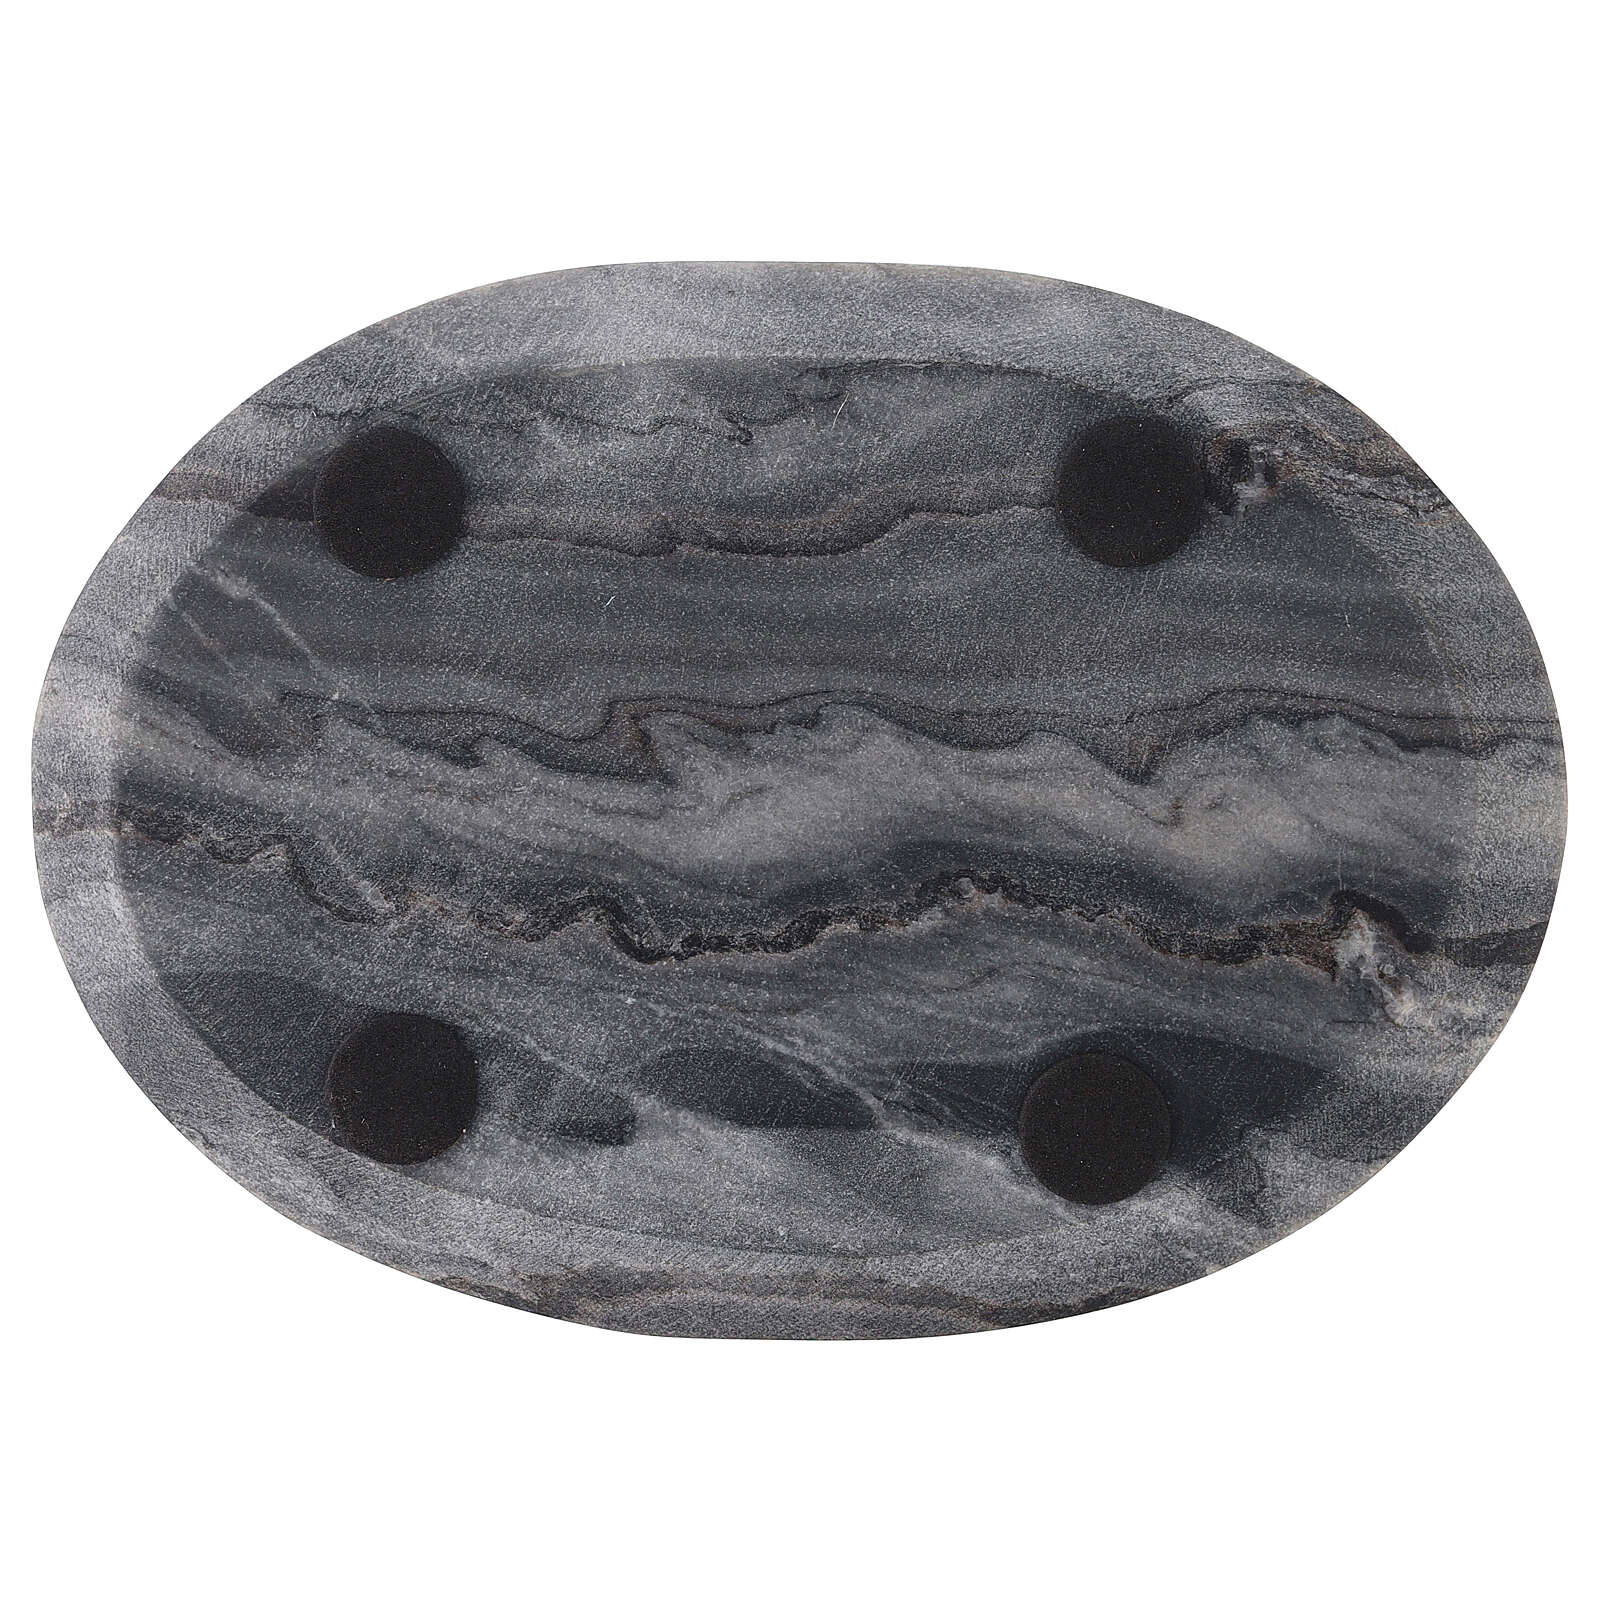 Oval candle plate of natural stone 8x5 1/2 in 3